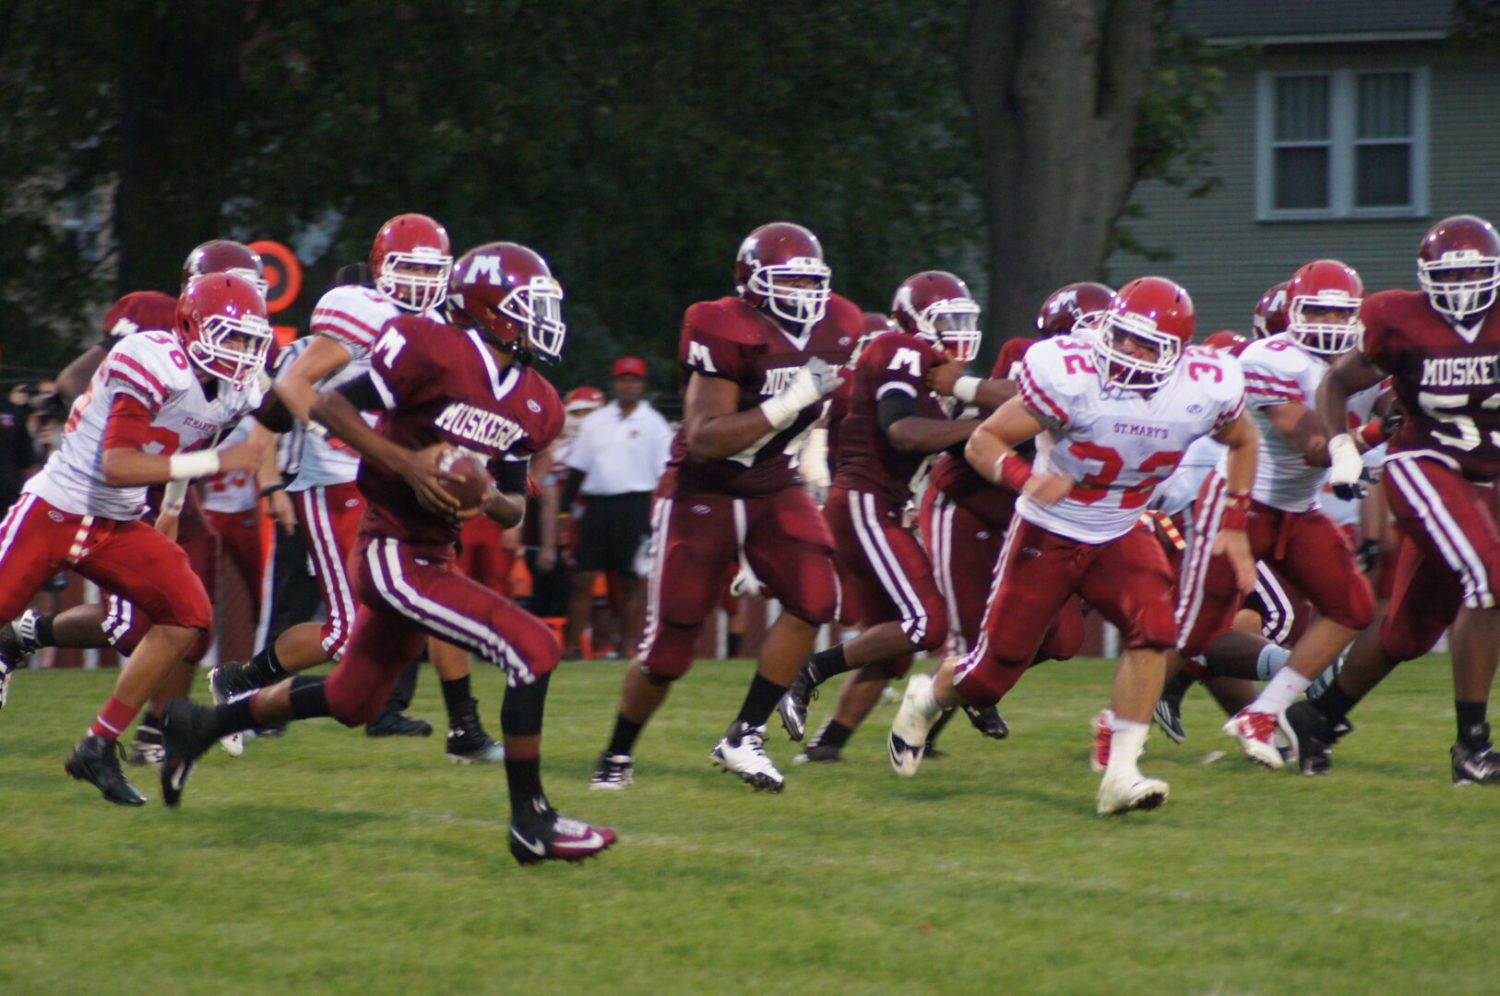 Muskegon Big Reds ready for battle with Division 2 state football title up for grabs